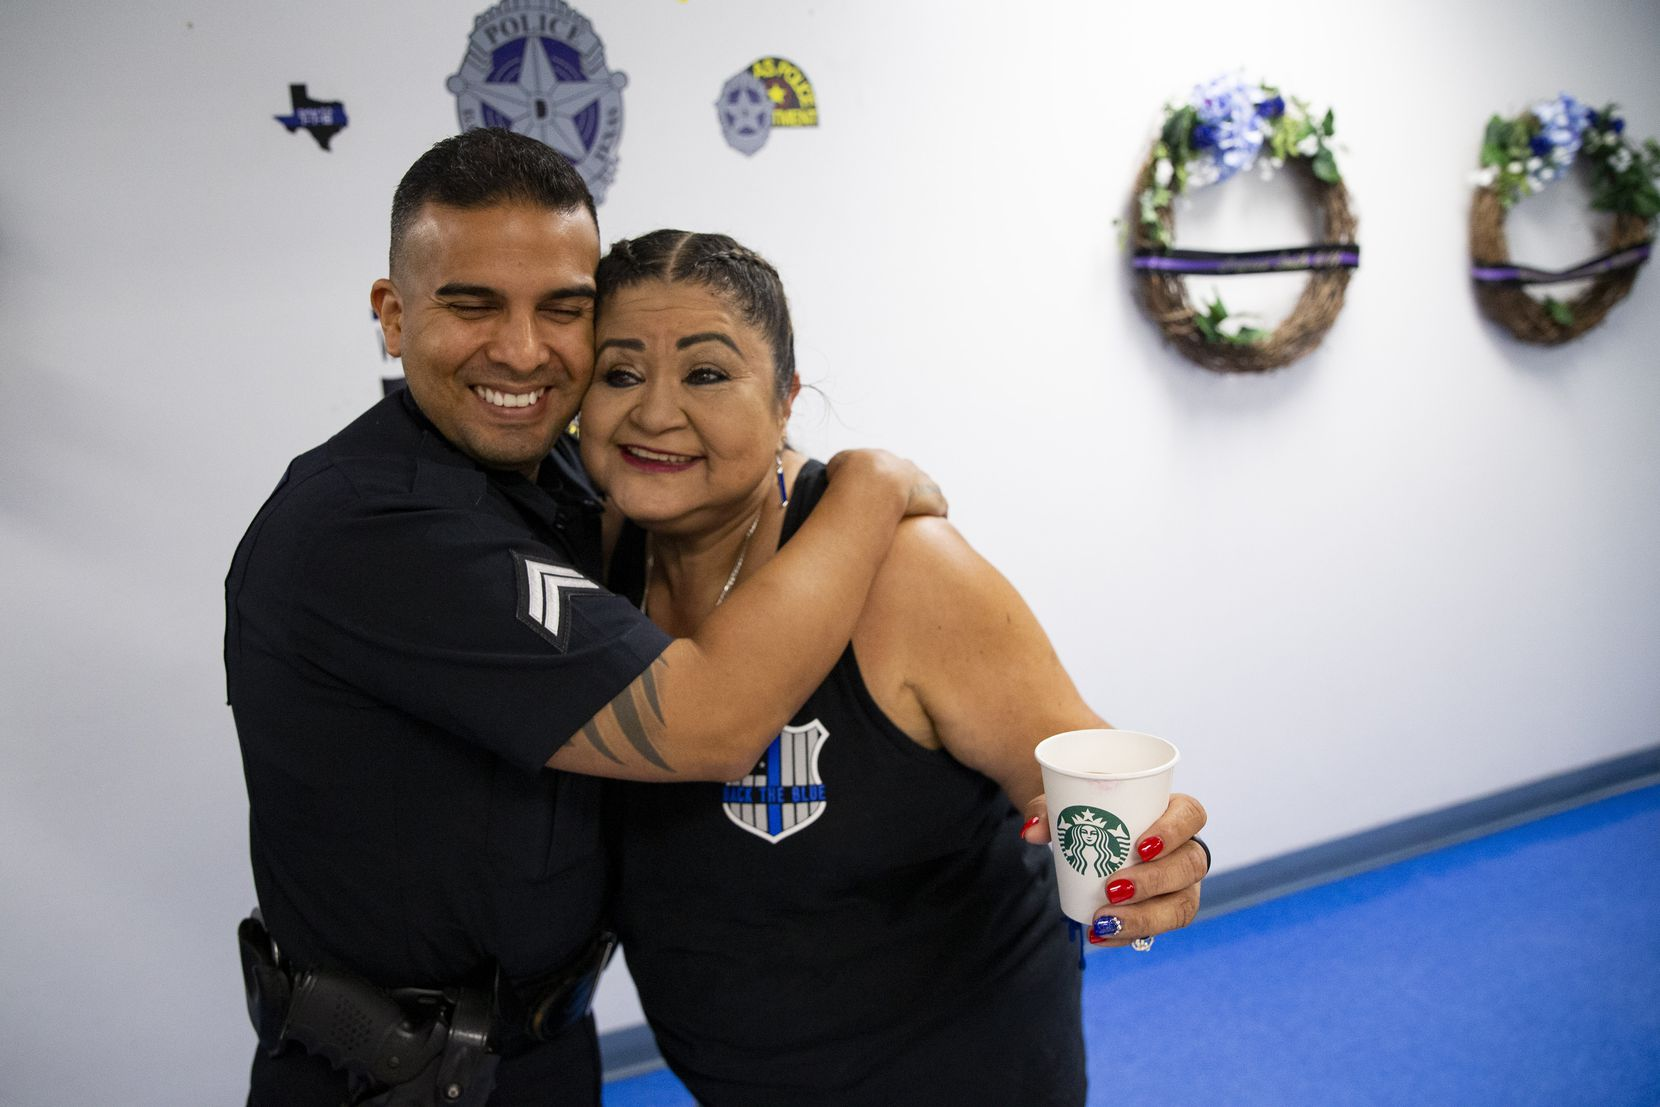 Valerie Zamarripa hugs Sr. Corporal Ruben Lozano on Friday, July 2, 2021, at the Dallas police Southwest Patrol division in Dallas. They are pictured in front of a wall honoring the five police officers who were killed when a gunman ambushed an evening of protests in downtown Dallas on July 7, 2016. Lozano worked with Zamarripa's son, Patrick Zamarripa, who was one of the five officers killed.